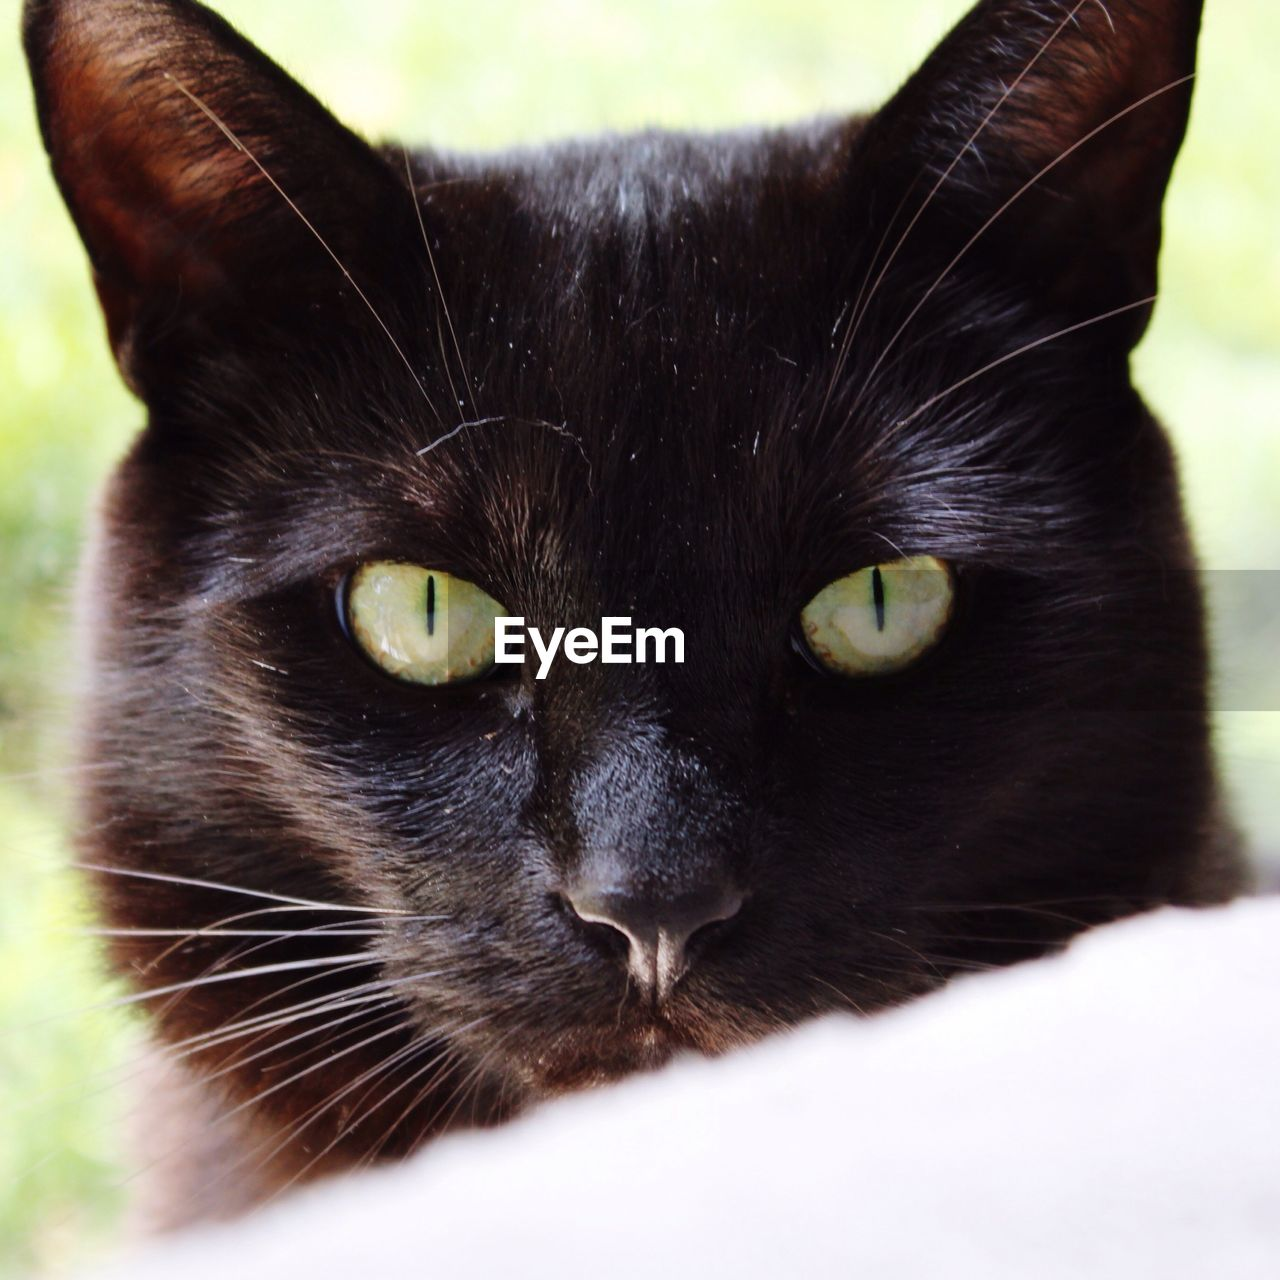 cat, domestic, pets, mammal, feline, domestic cat, animal themes, domestic animals, animal, one animal, portrait, looking at camera, vertebrate, close-up, whisker, green eyes, black color, animal body part, no people, animal eye, animal head, yellow eyes, snout